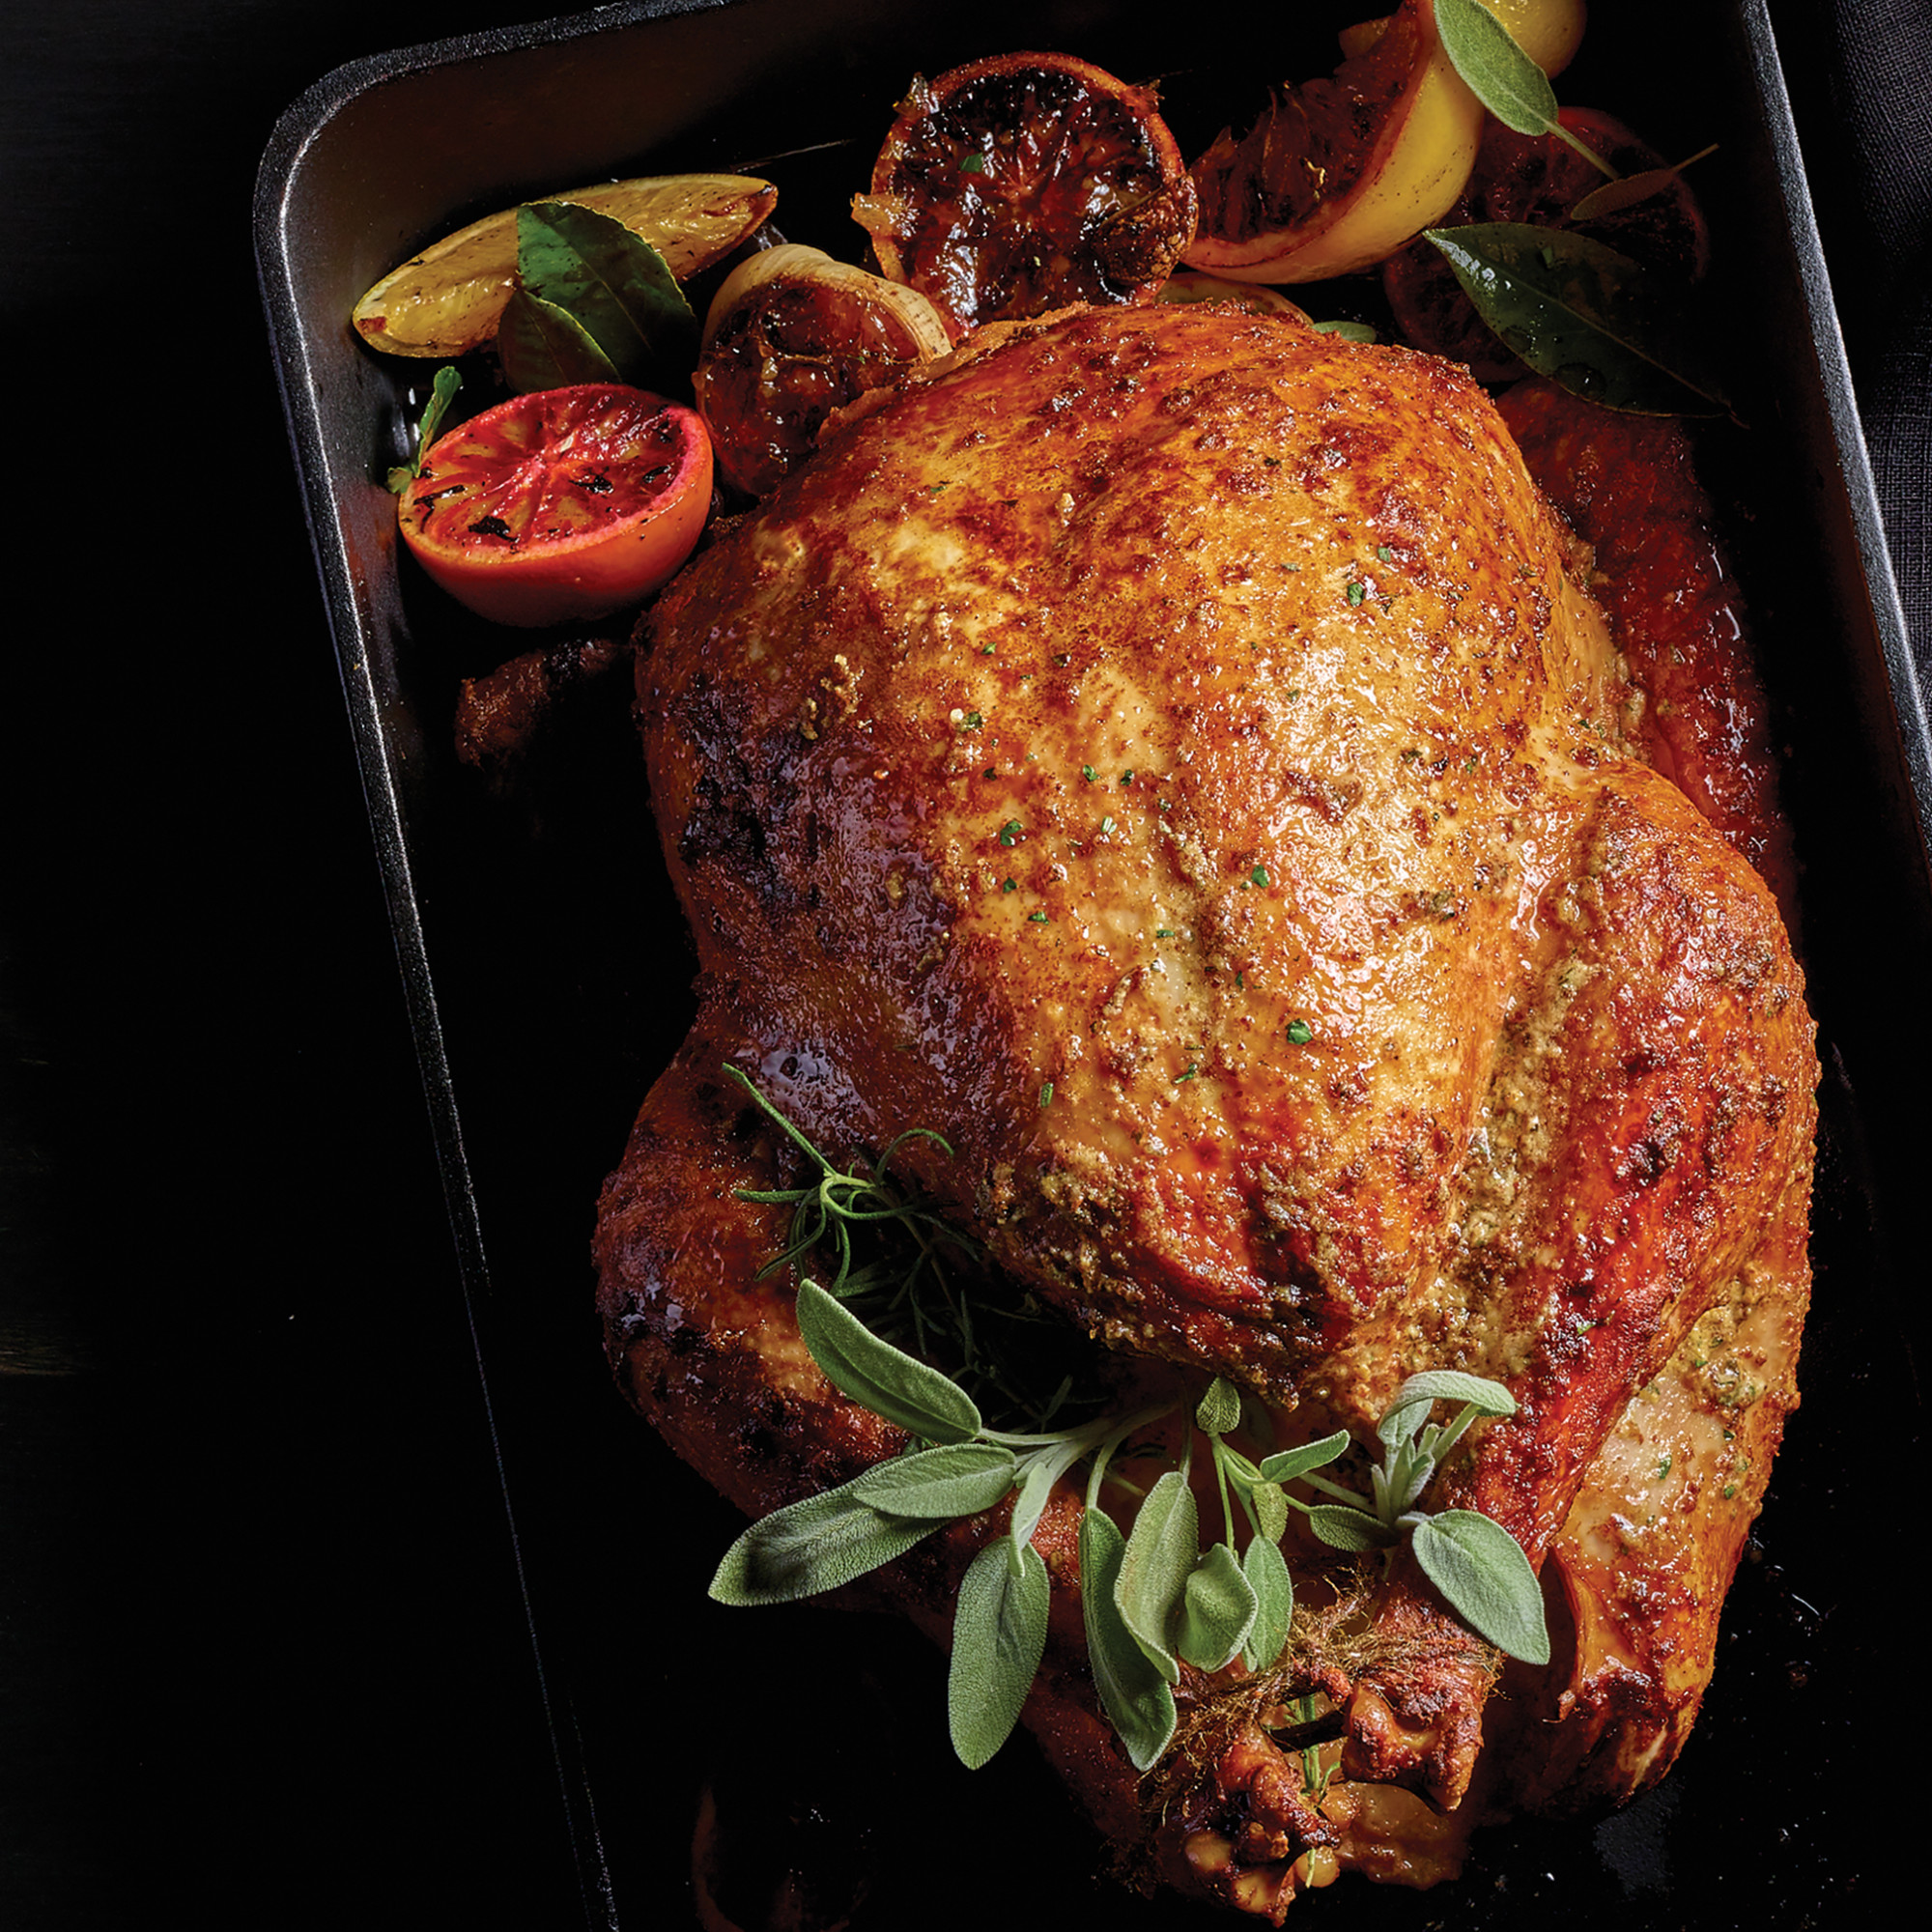 Heb Thanksgiving Dinner  Heb Thanksgiving Meal Deal 2016 Gift Ftempo